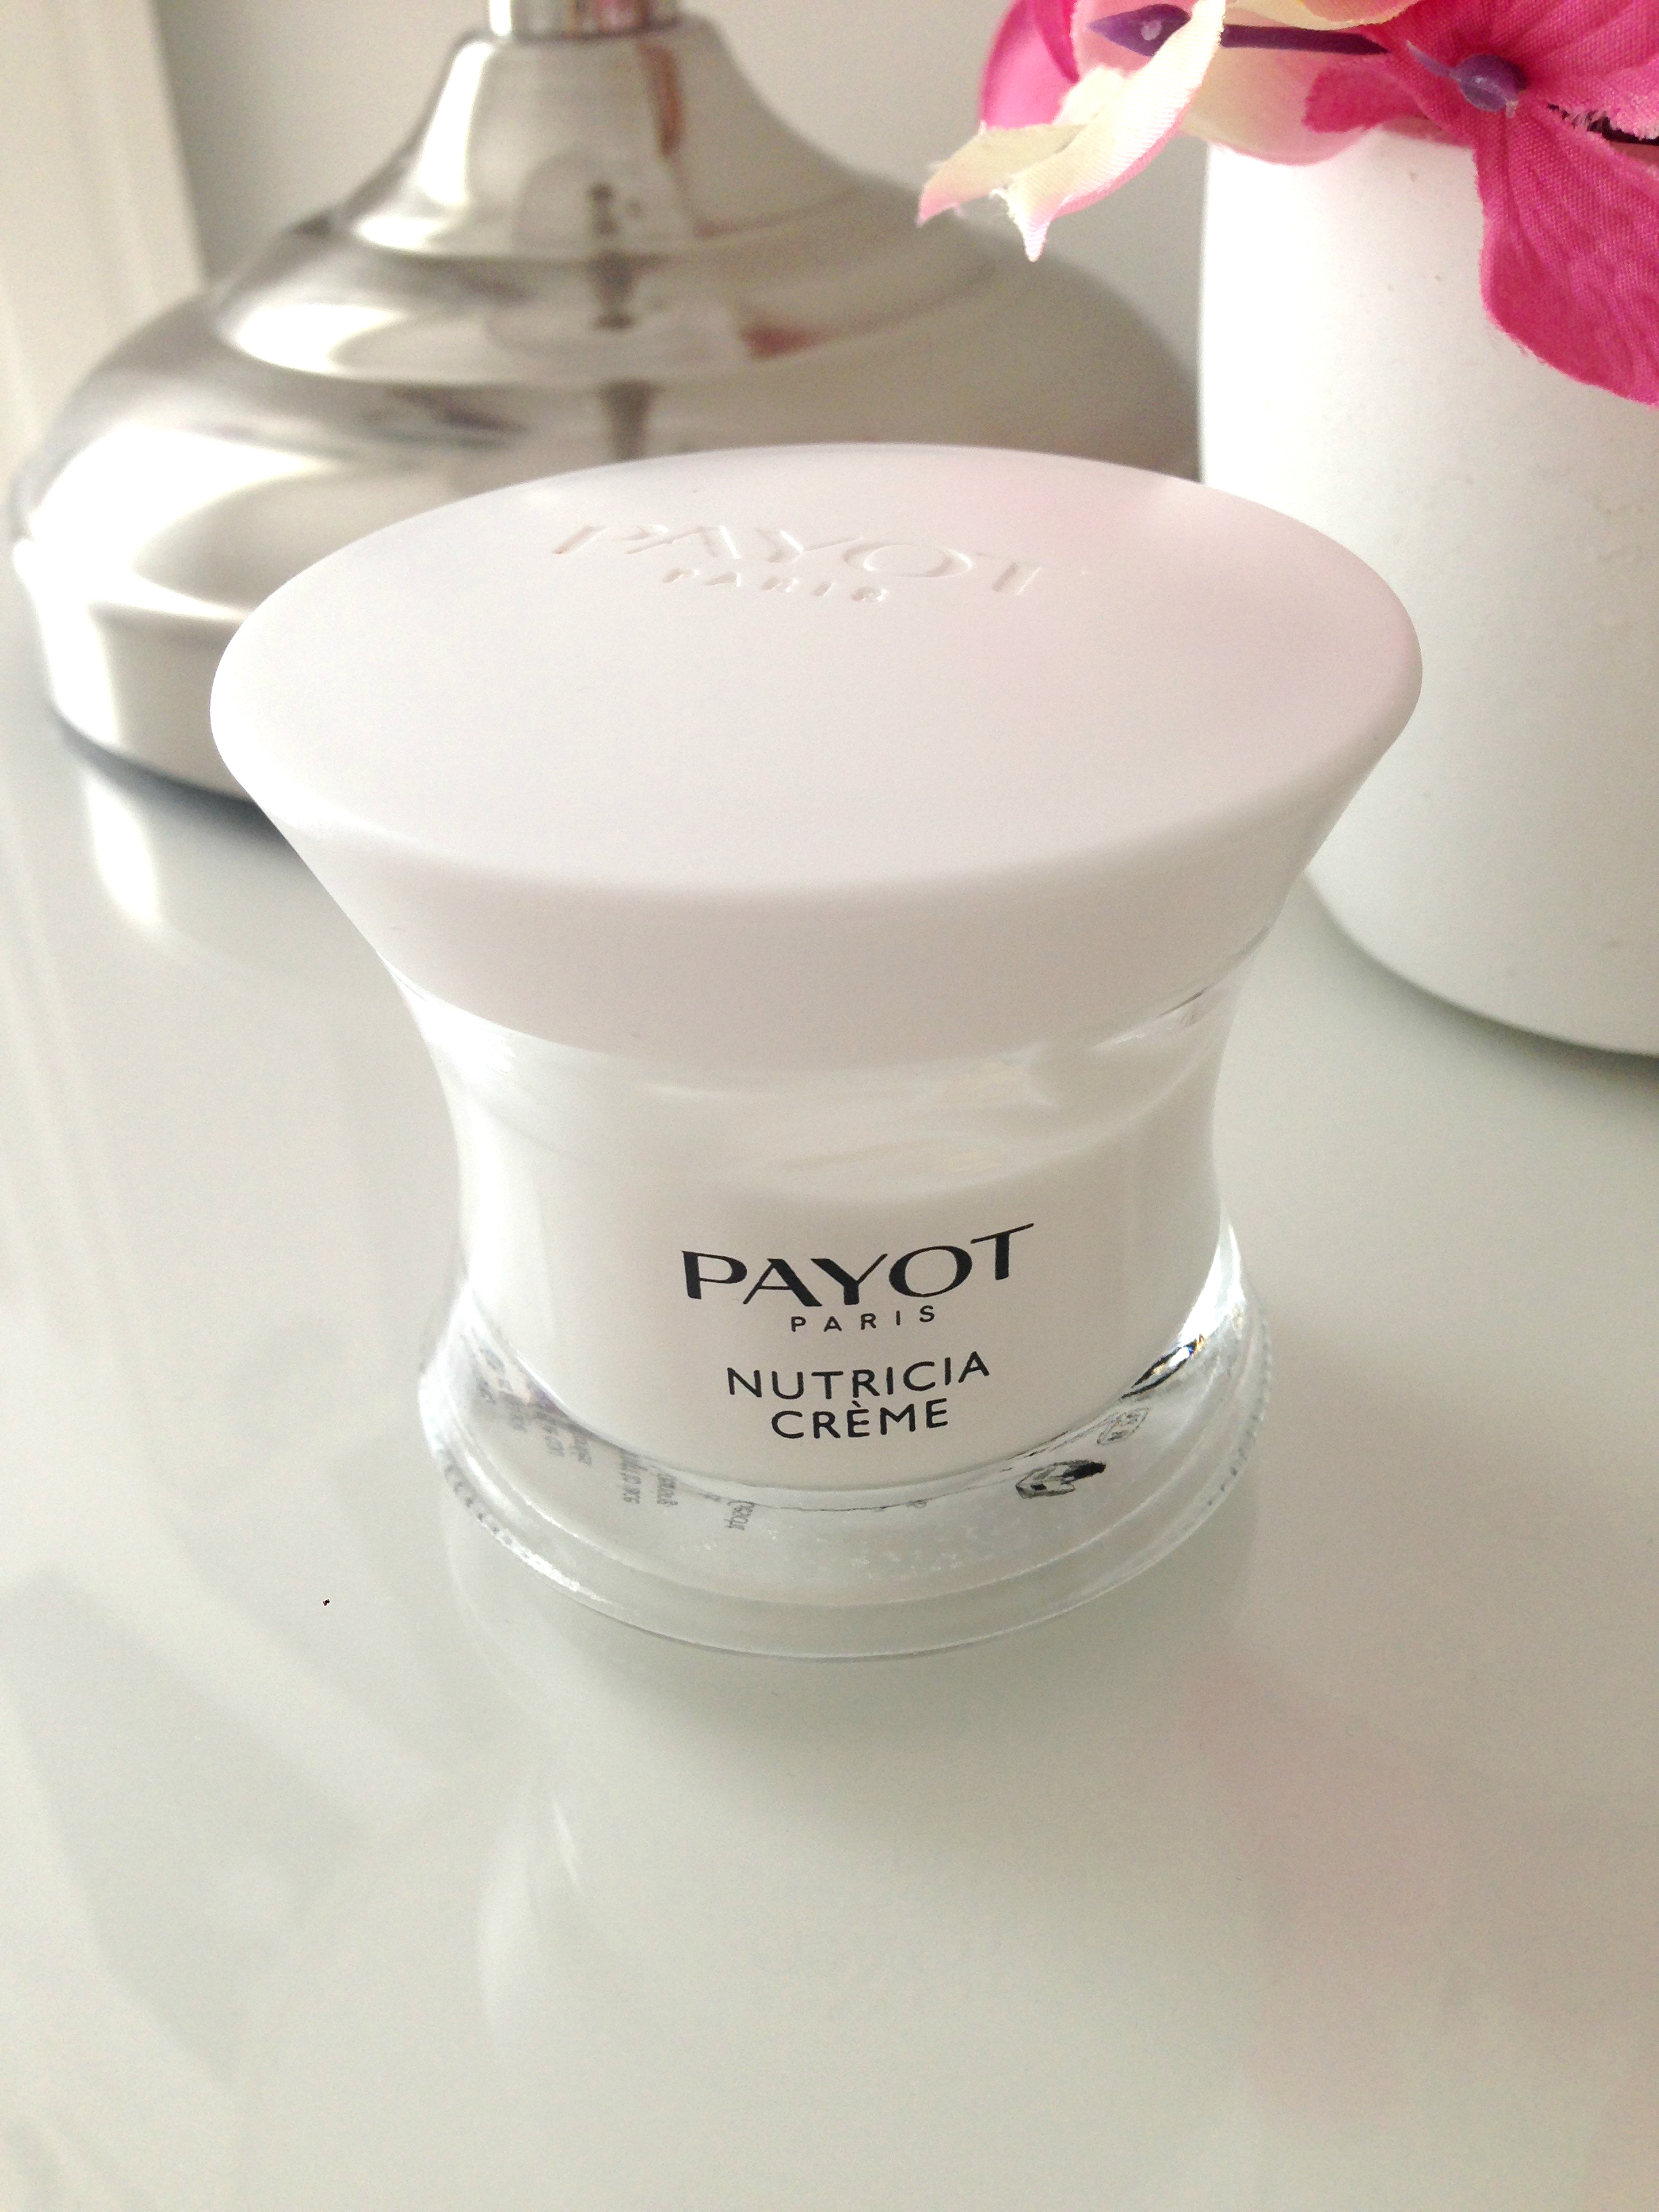 PAYOT Nutricia creme